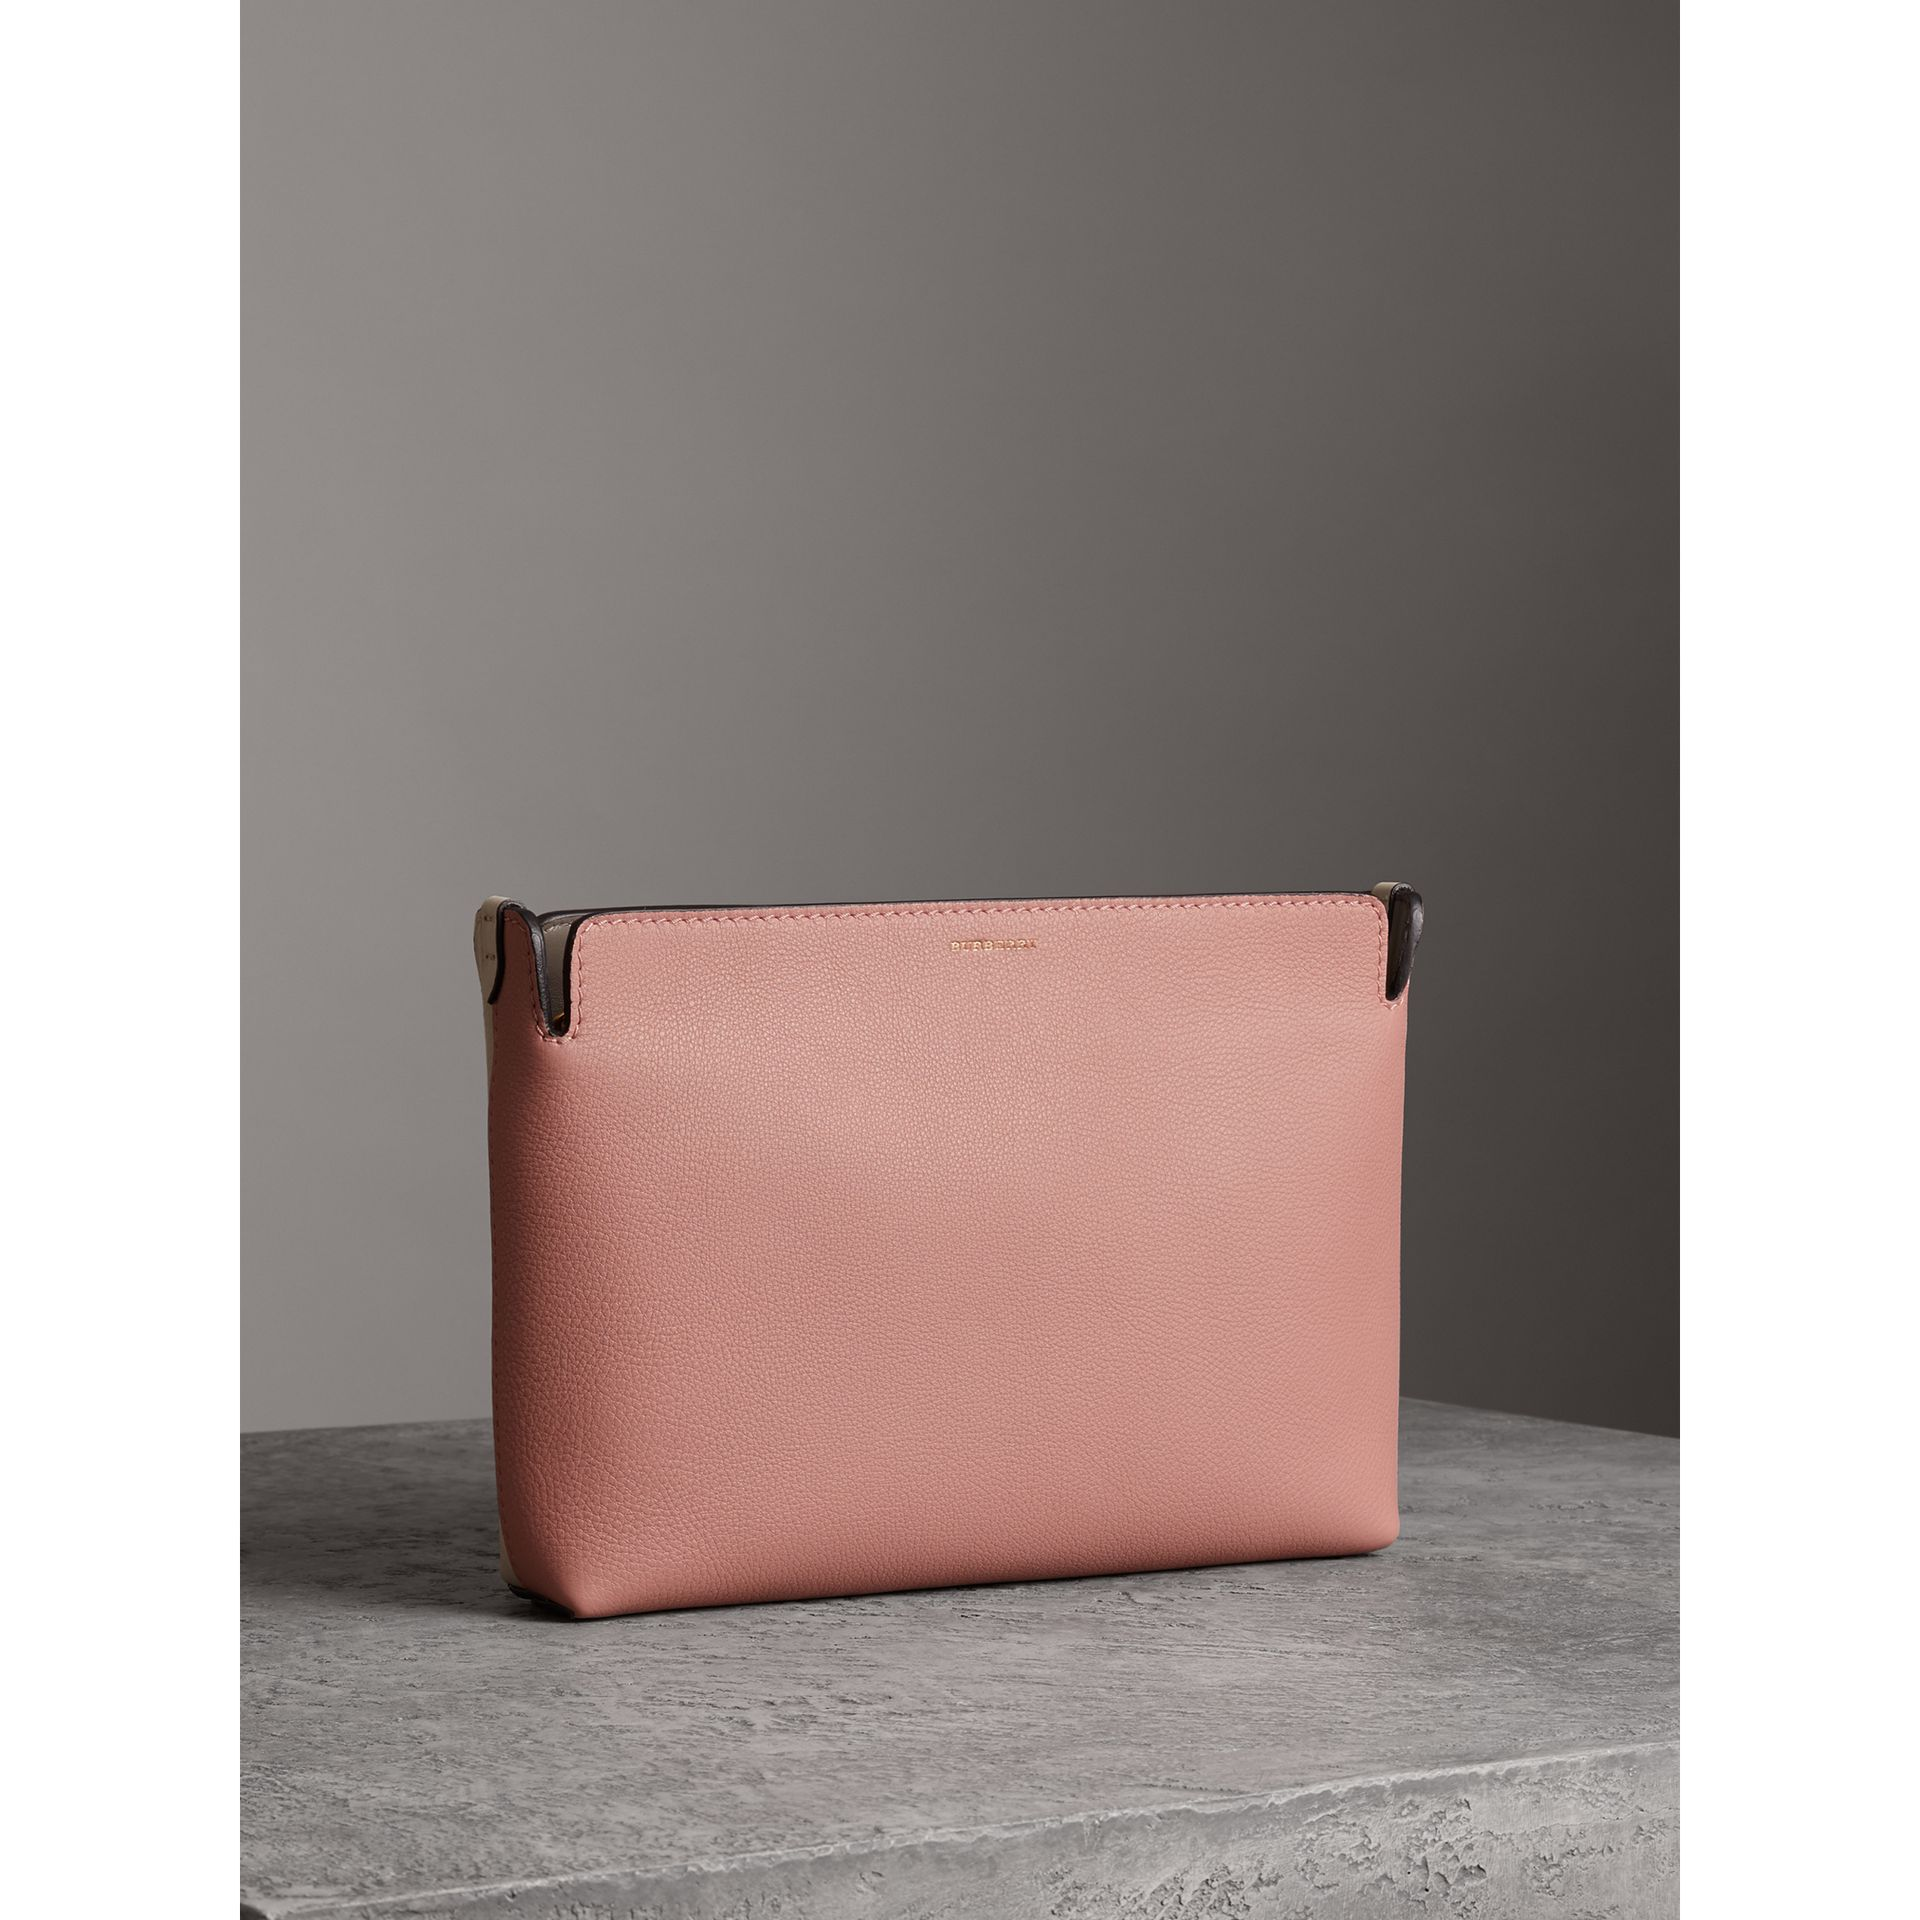 Medium Tri-tone Leather Clutch in Dusty Rose/limestone | Burberry - gallery image 6